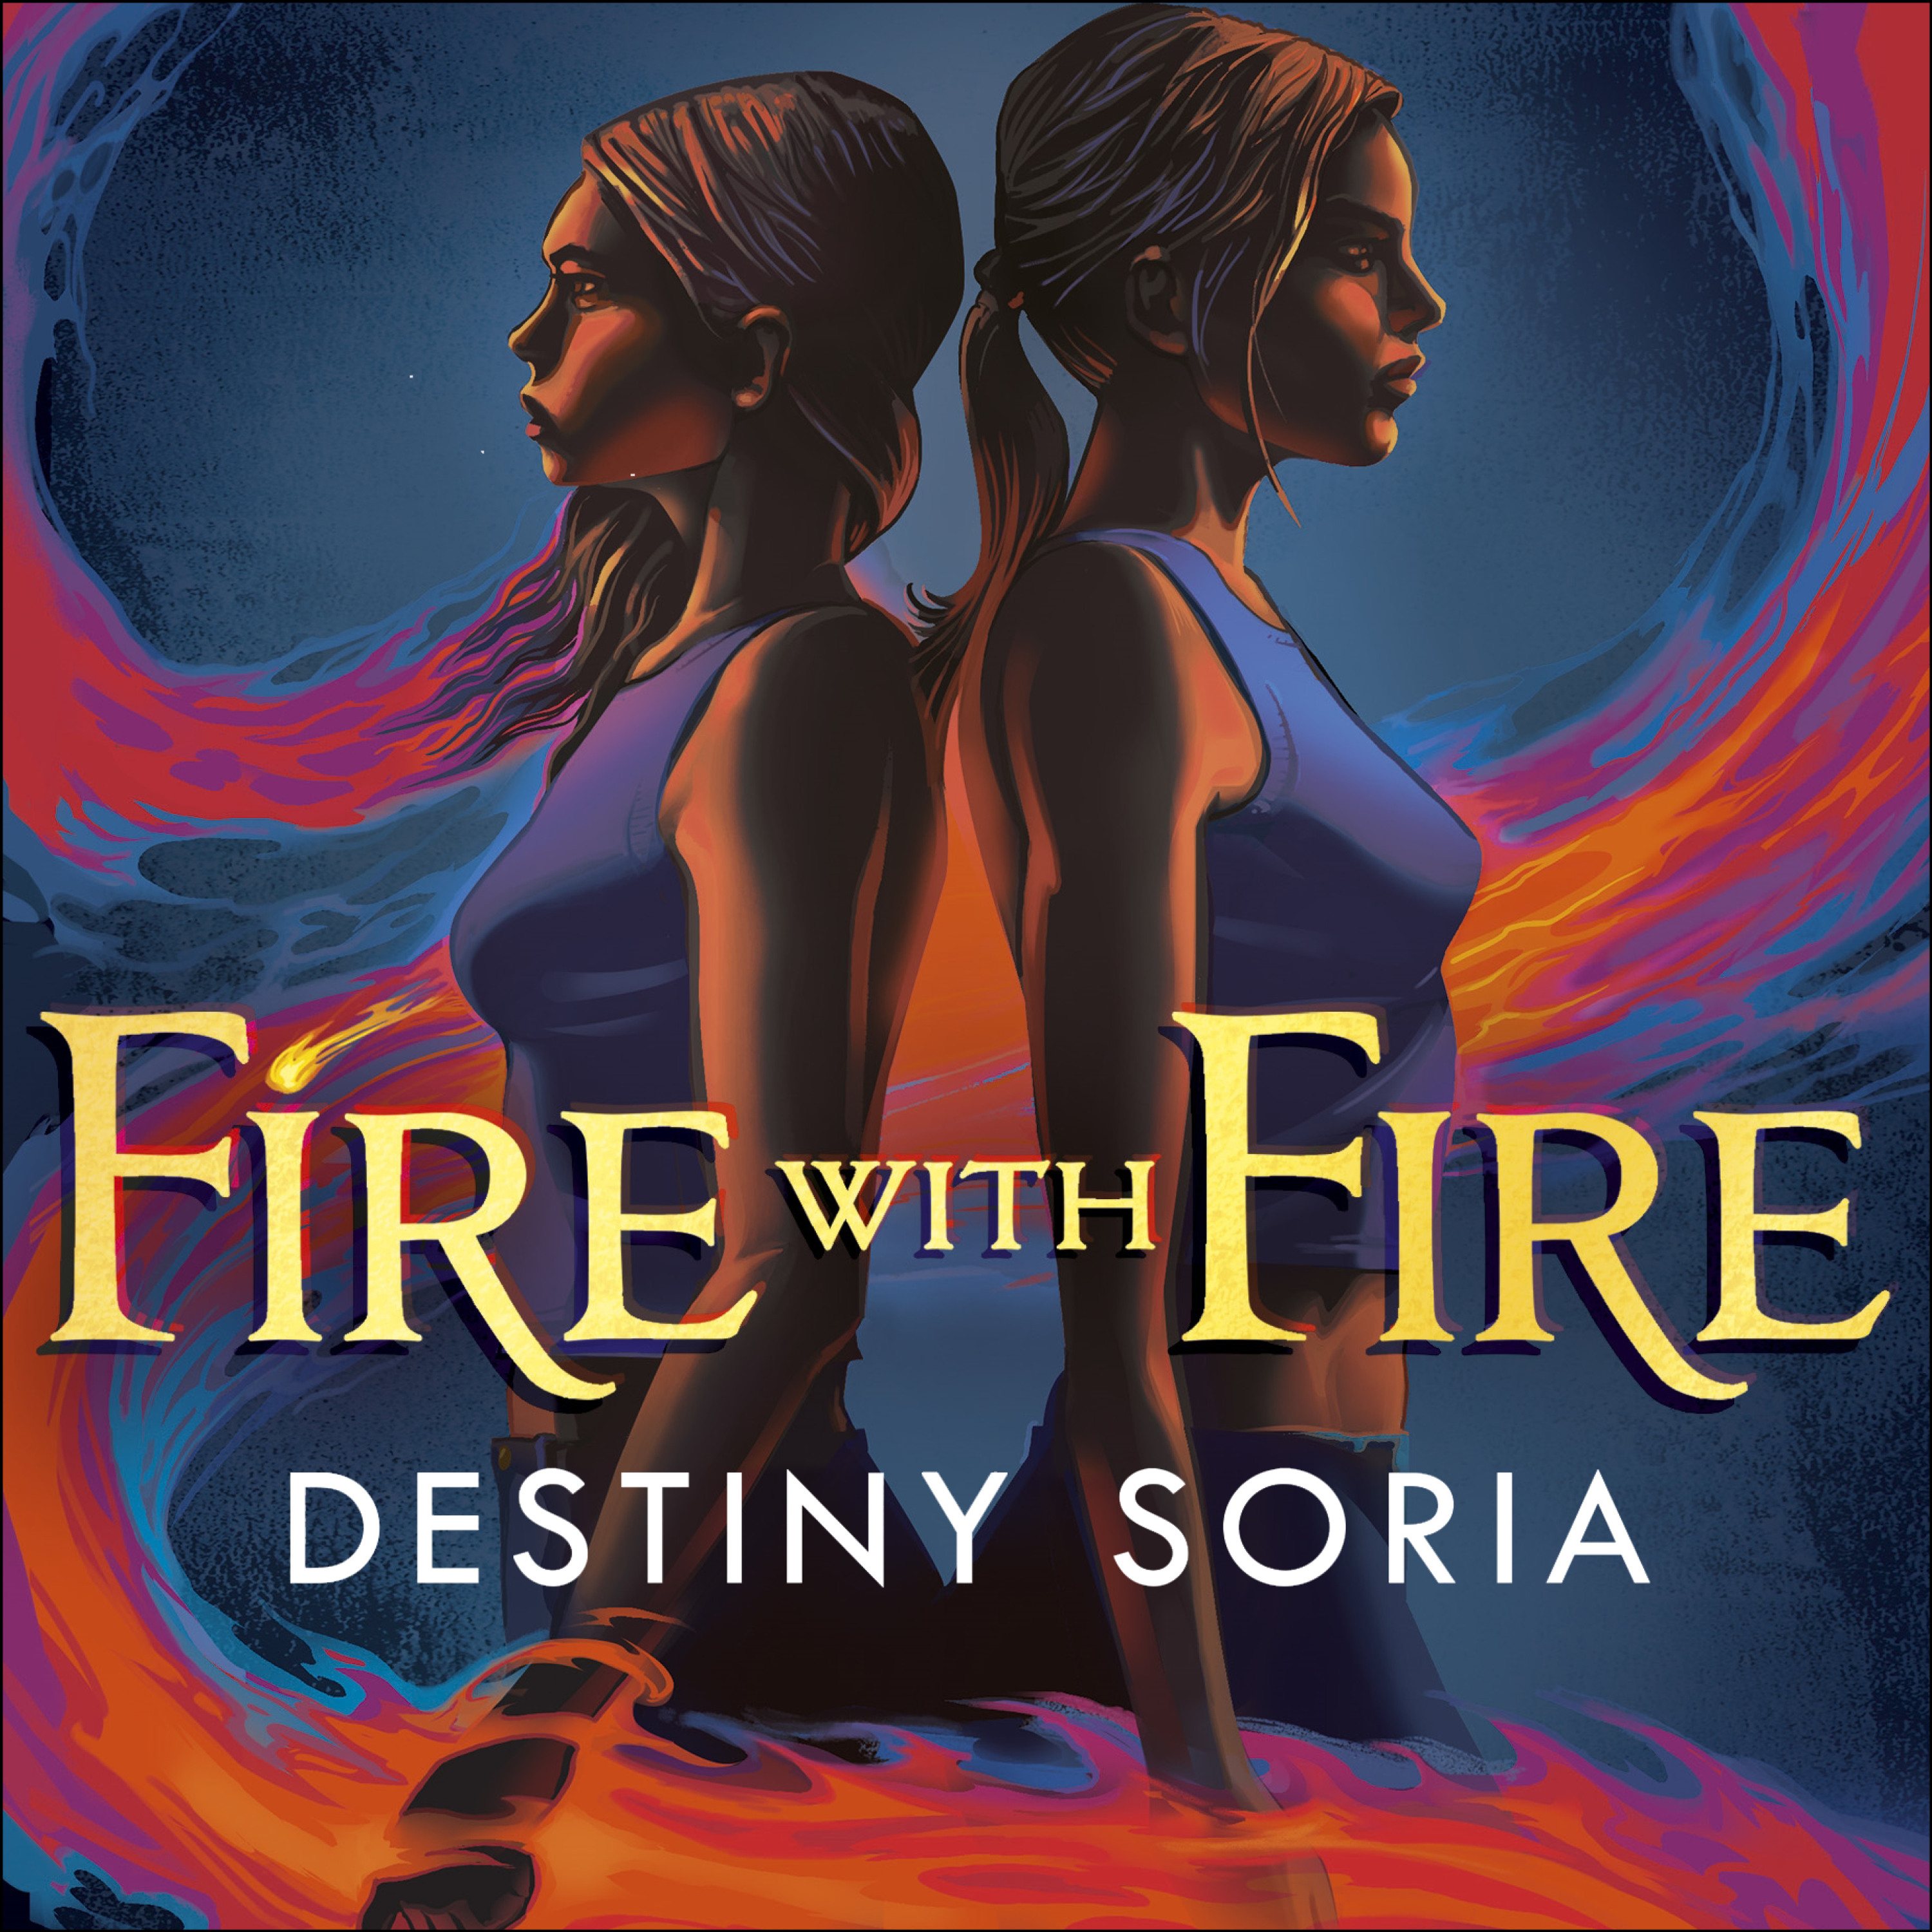 FIRE WITH FIRE by Destiny Soria, read by Mari Liatis - audiobook extract